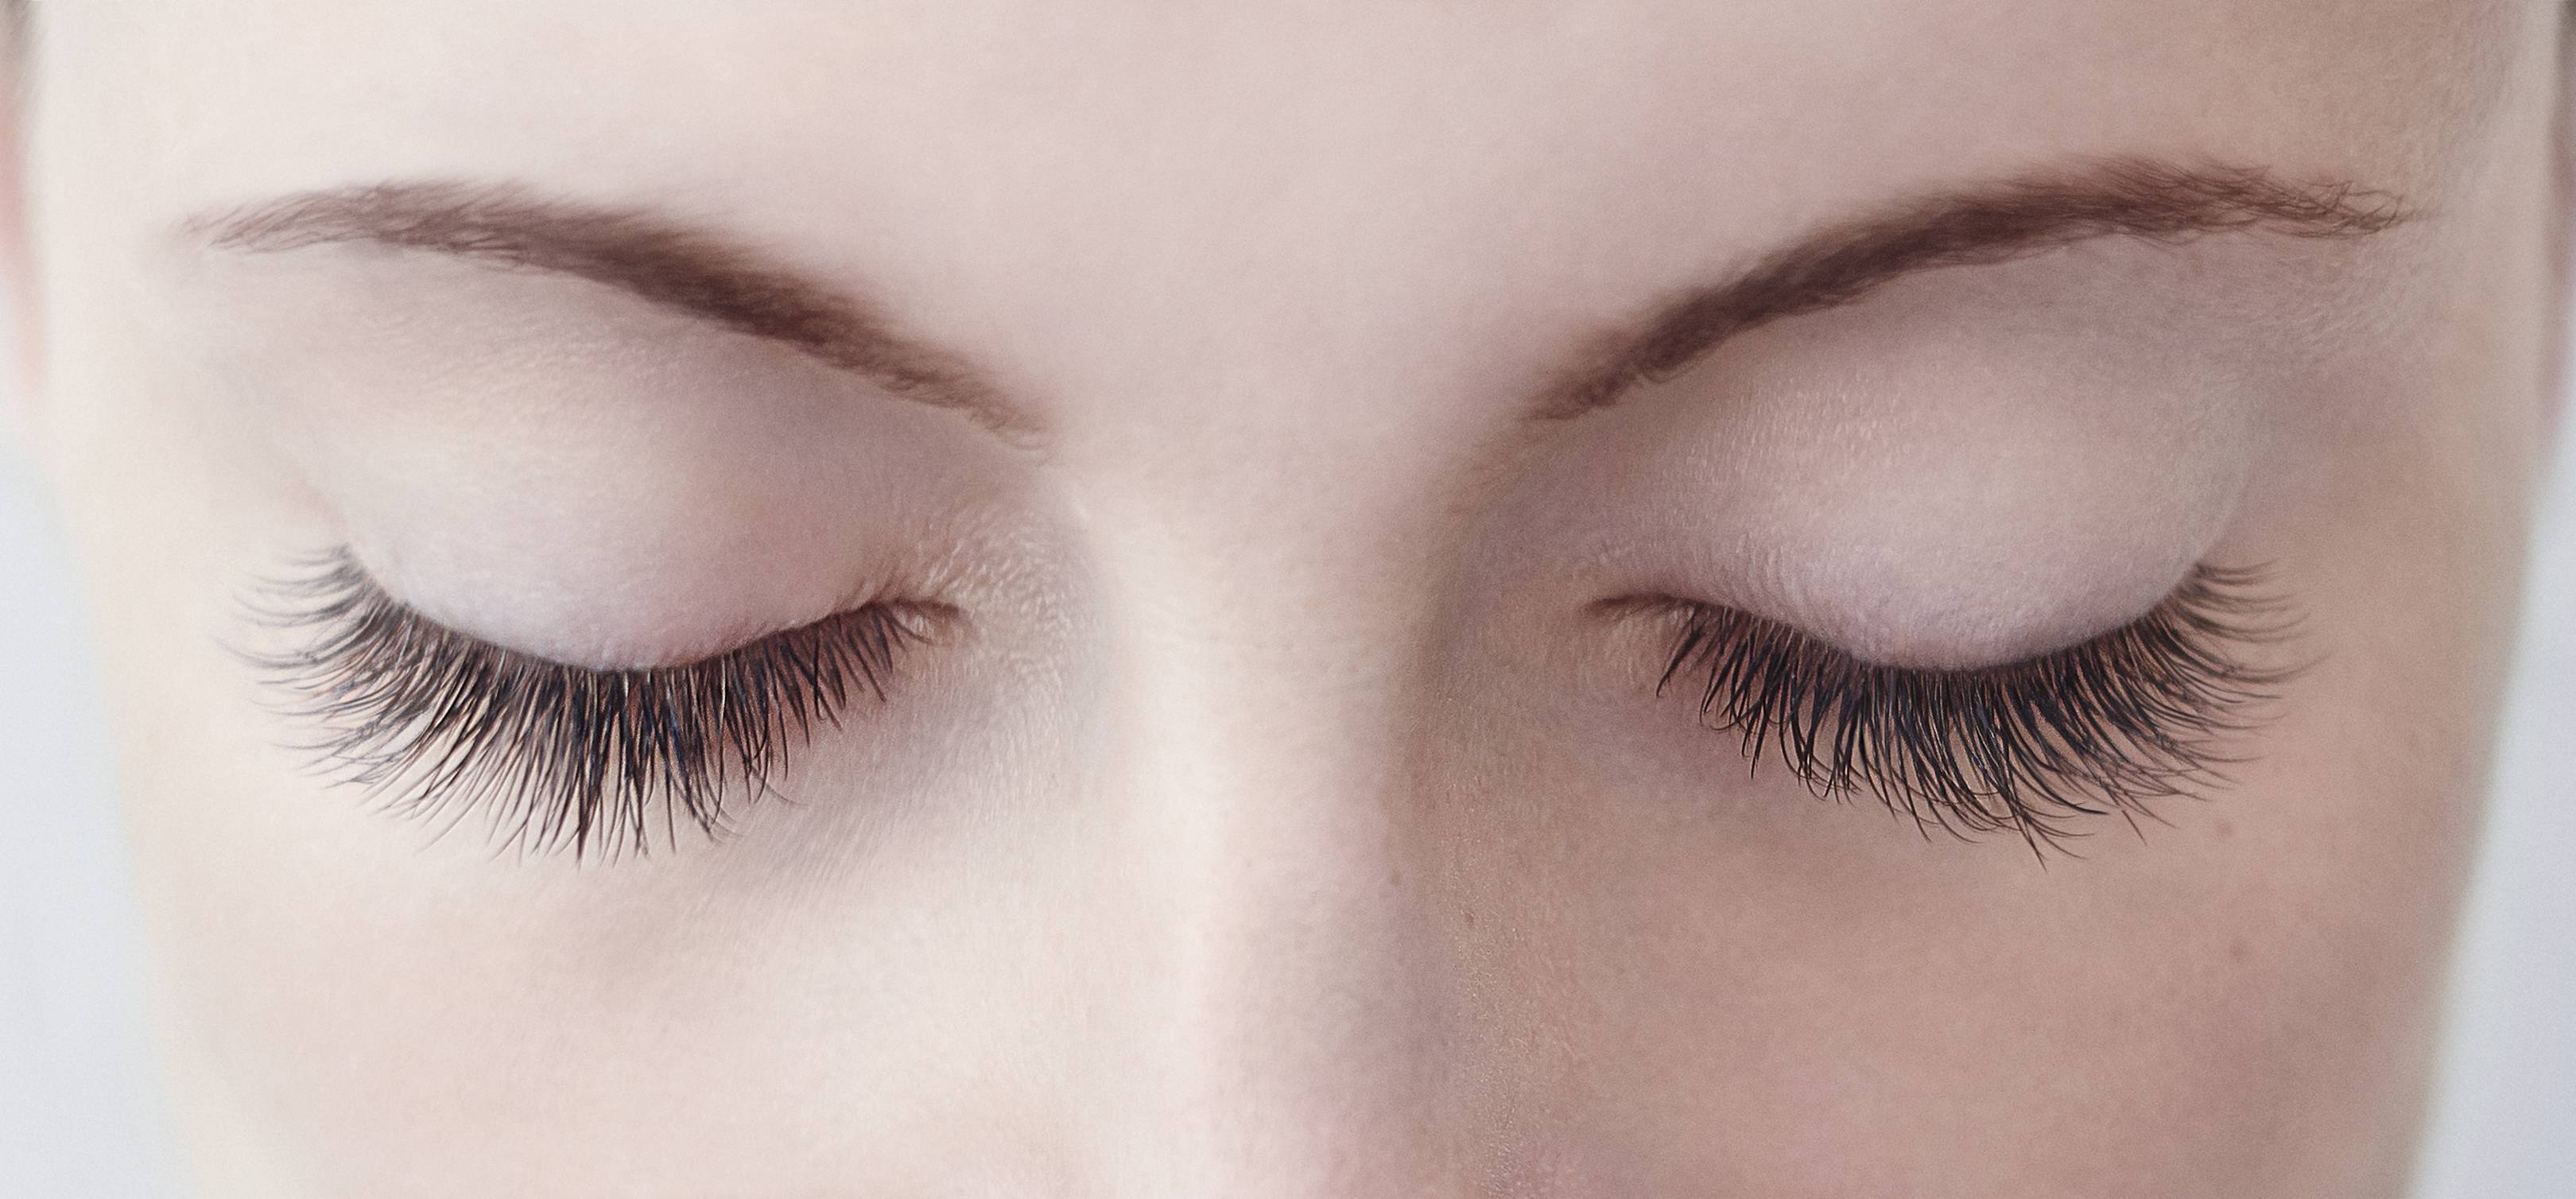 Eyelash Extensions Dos And Donts For Amazing Eyelashes Glamour Uk